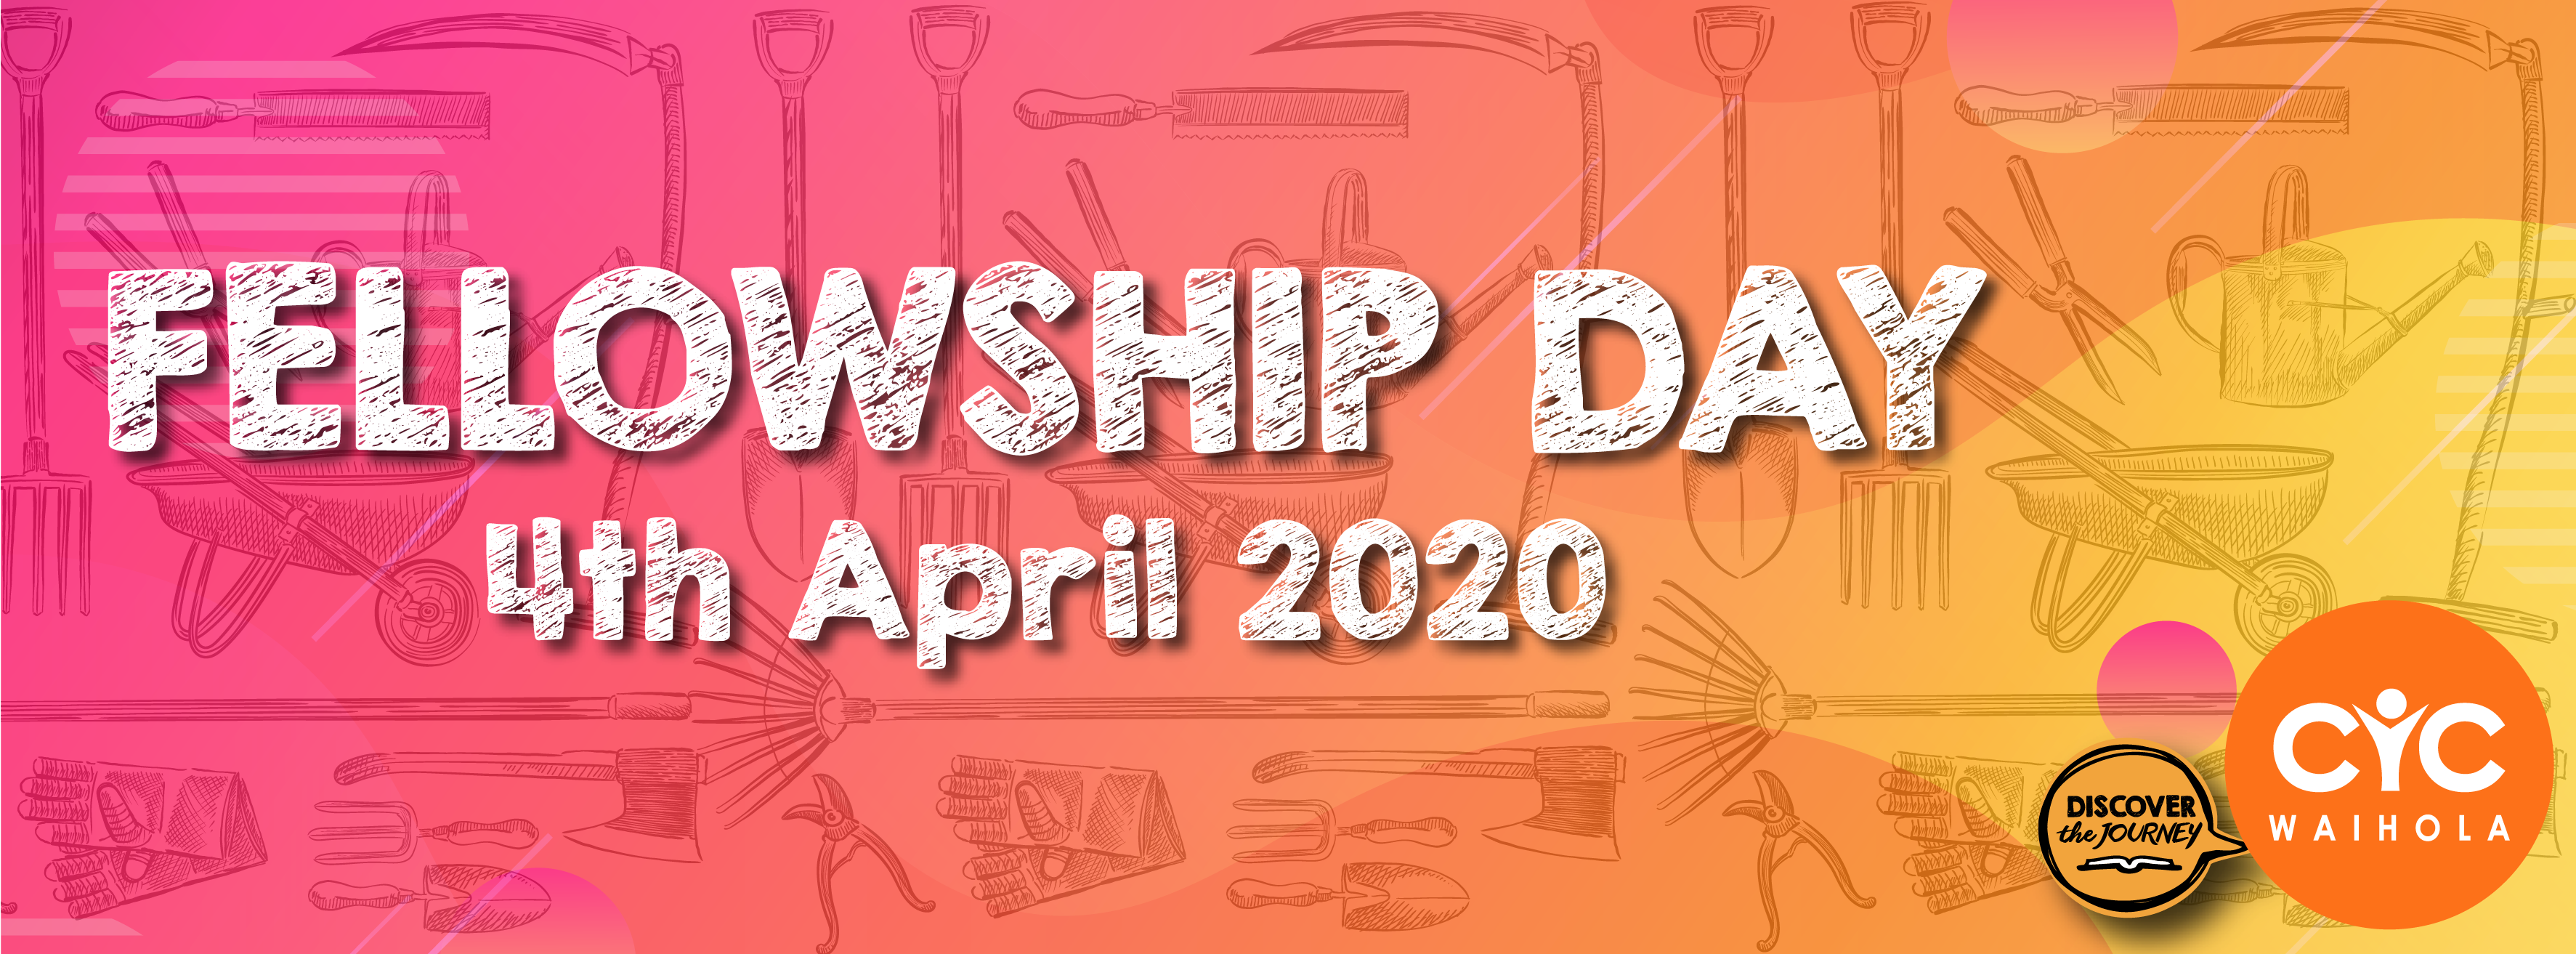 Fellowship Day – 29th August 2020